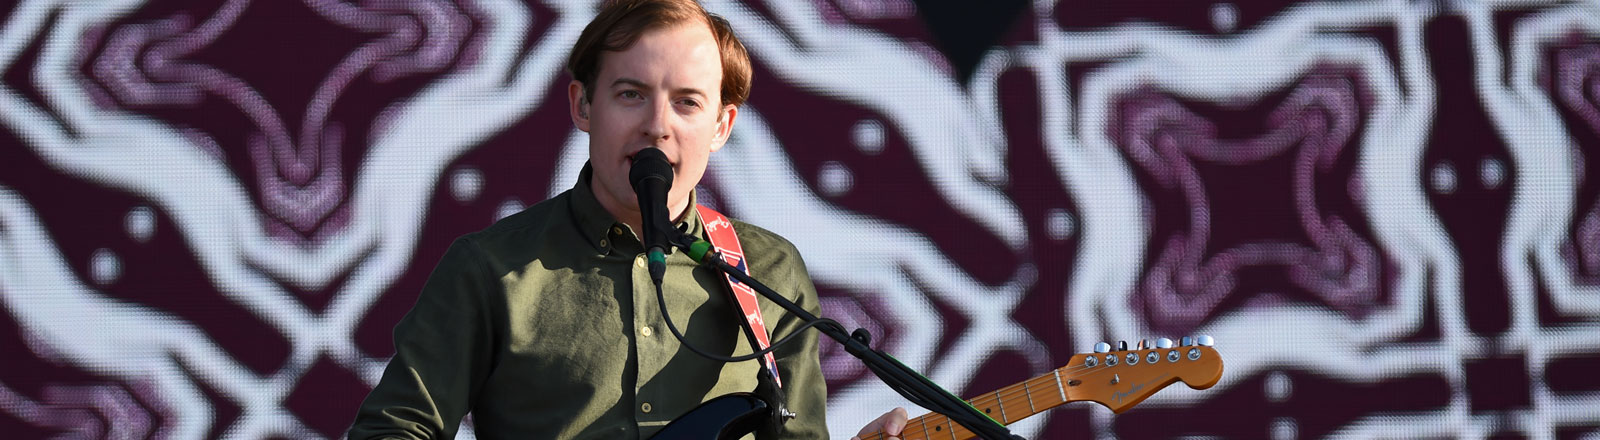 Jack Steadman, Sänger von Bombay Bicycle Club.